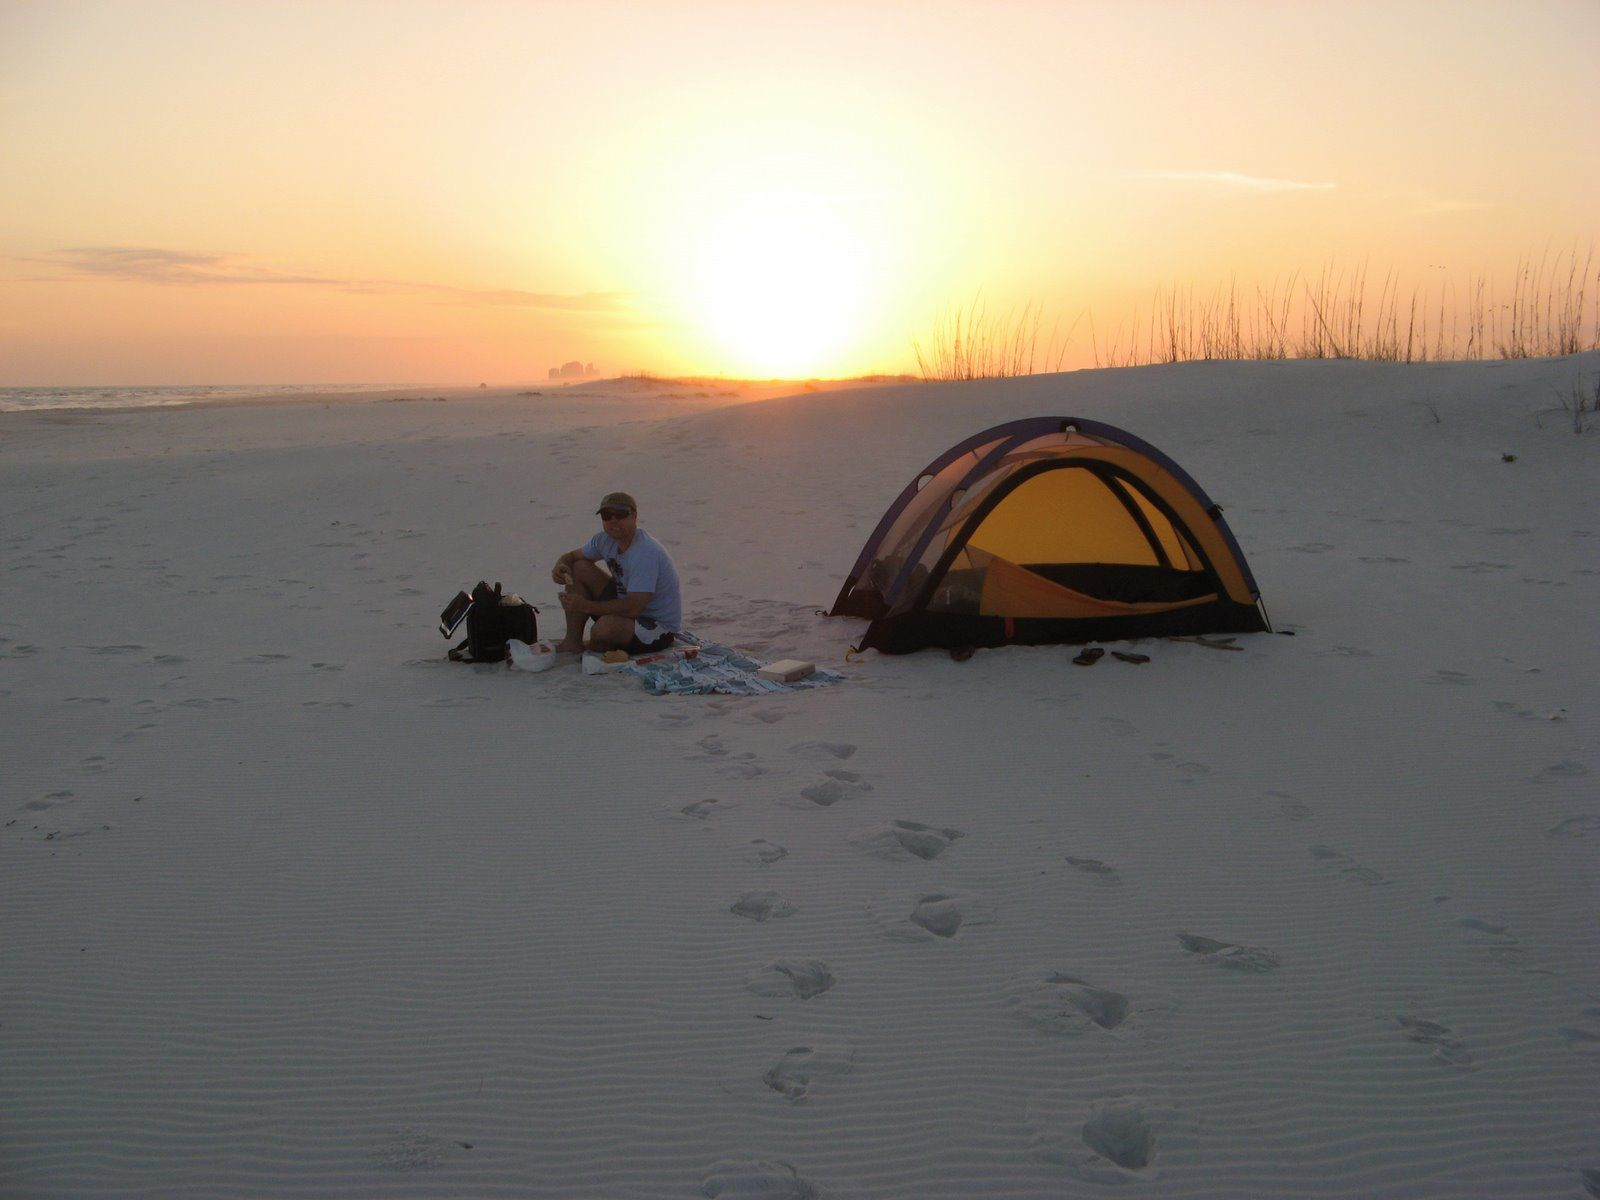 Beau Beach Camping At Gulf Islands National Seashore//Best Camping/cabins In NW  Florida